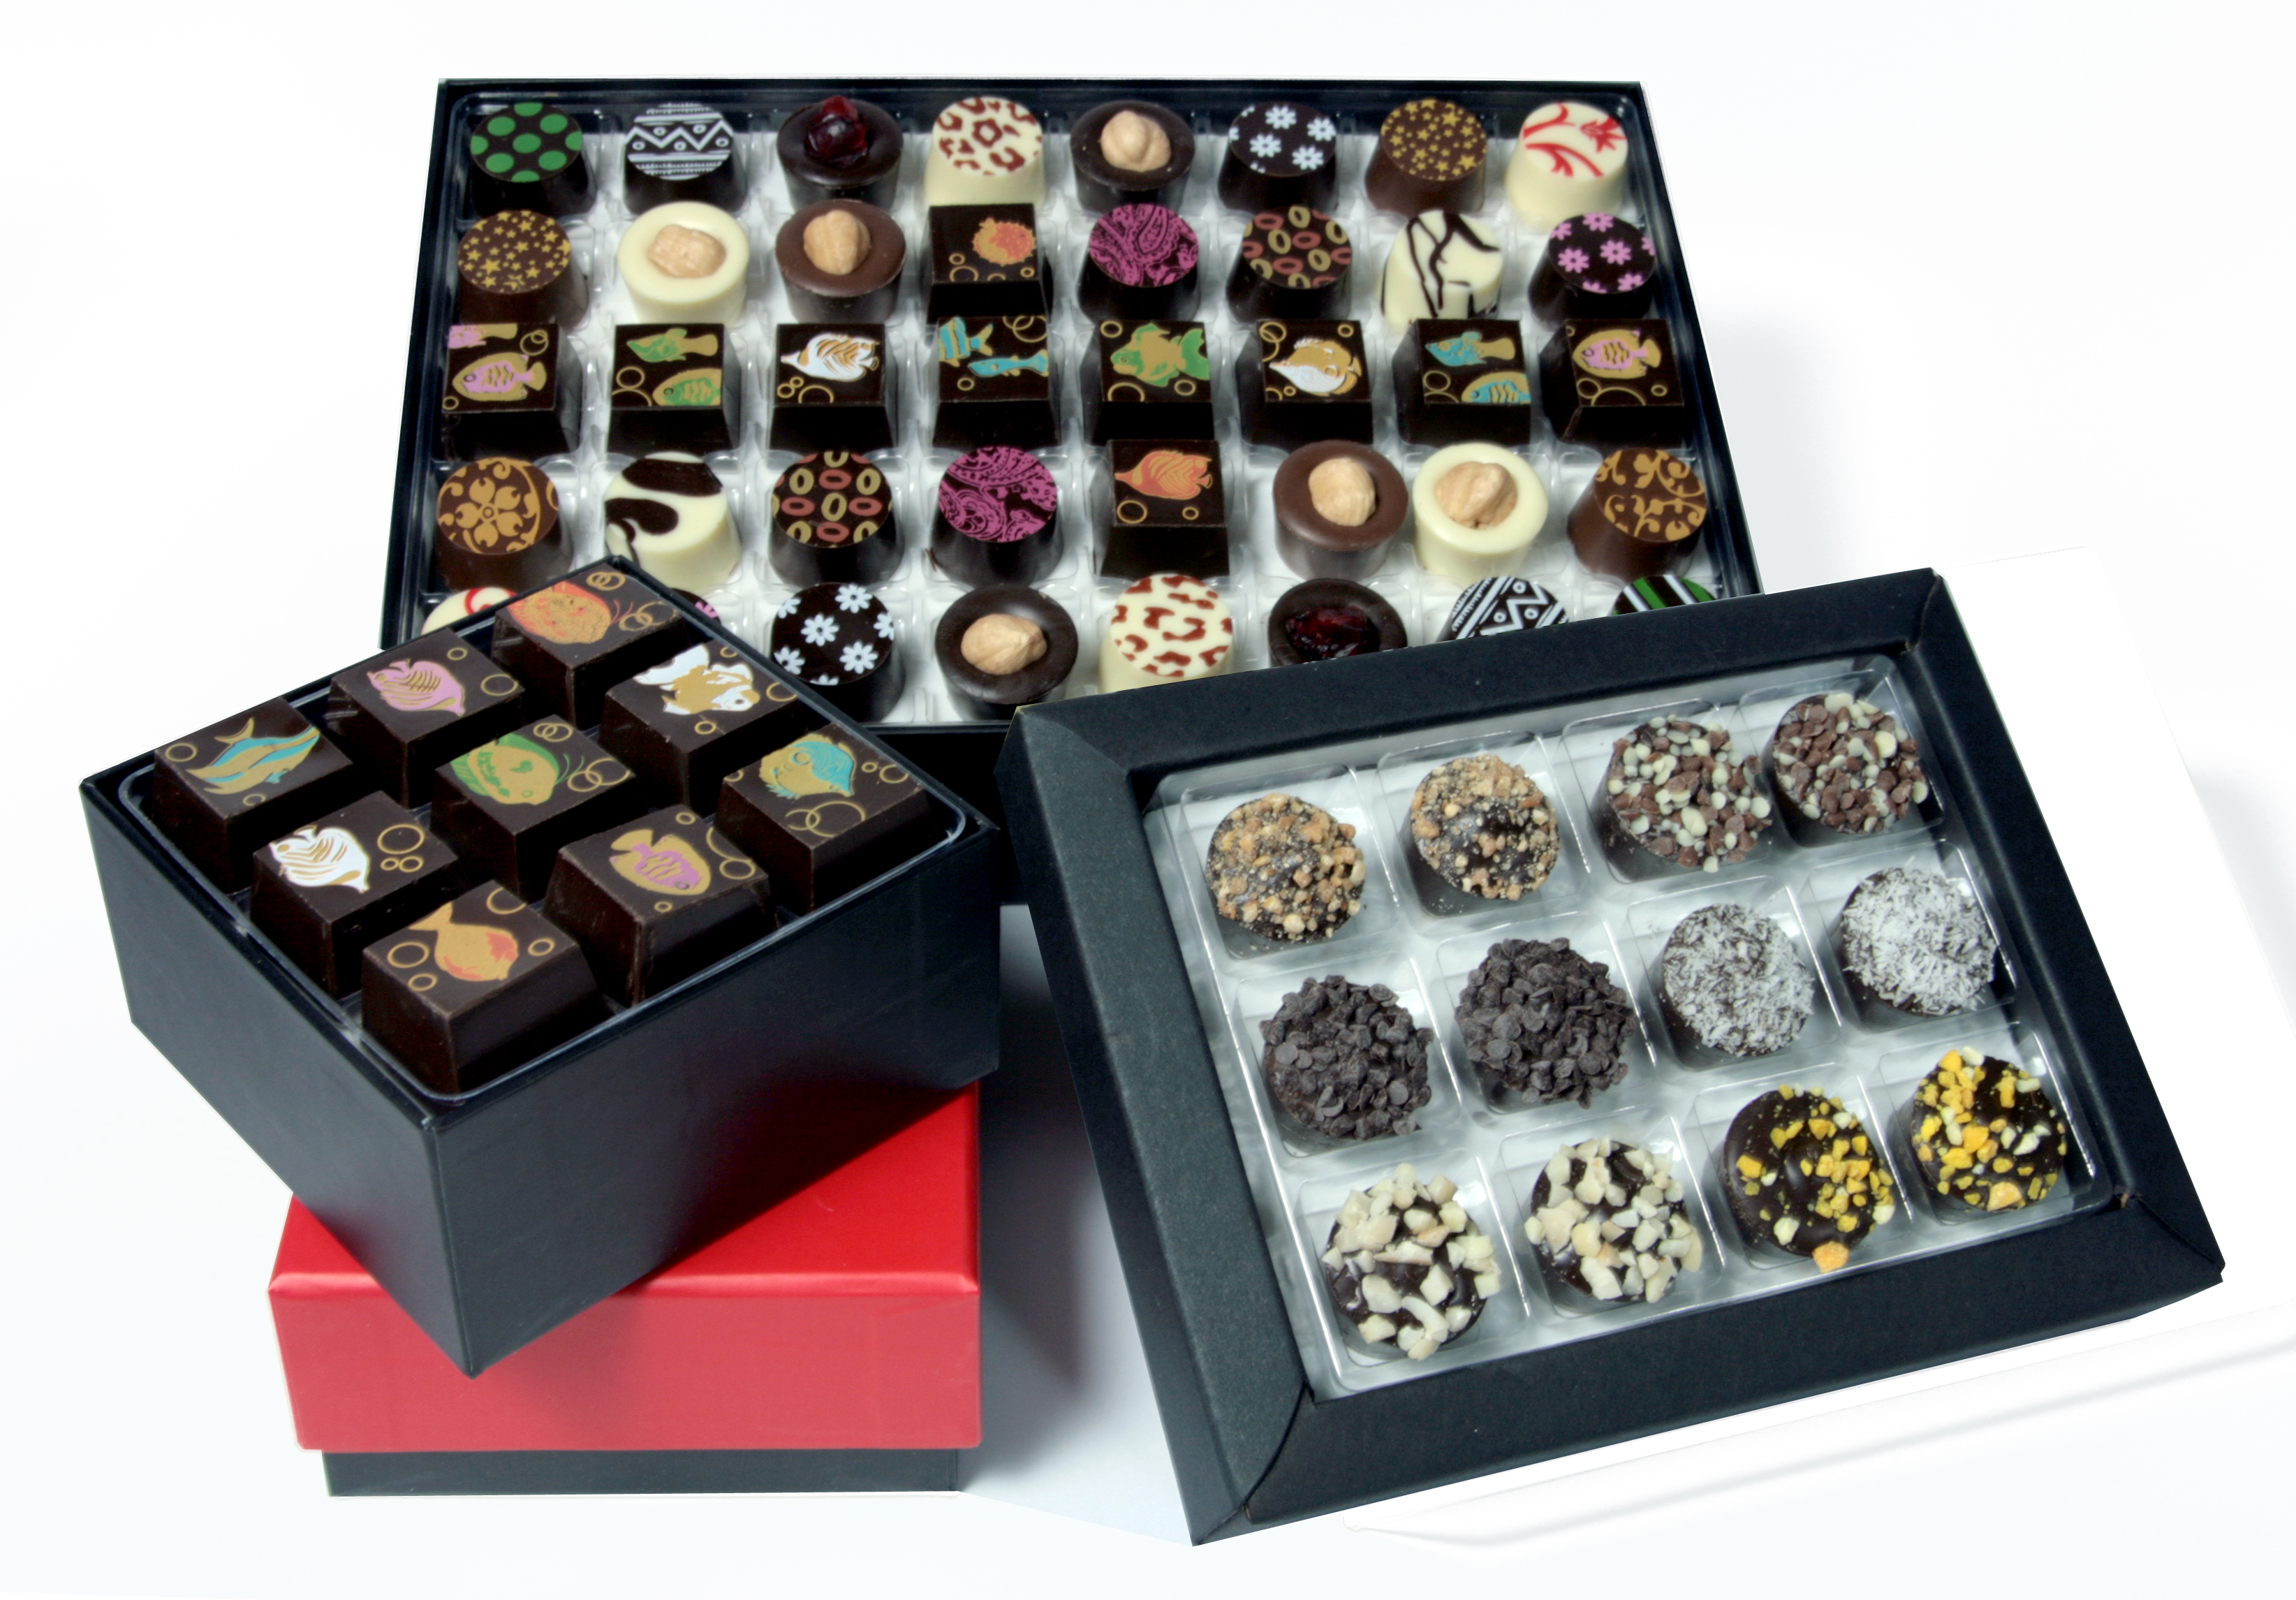 leading miami chocolate company adds free samples to 2010